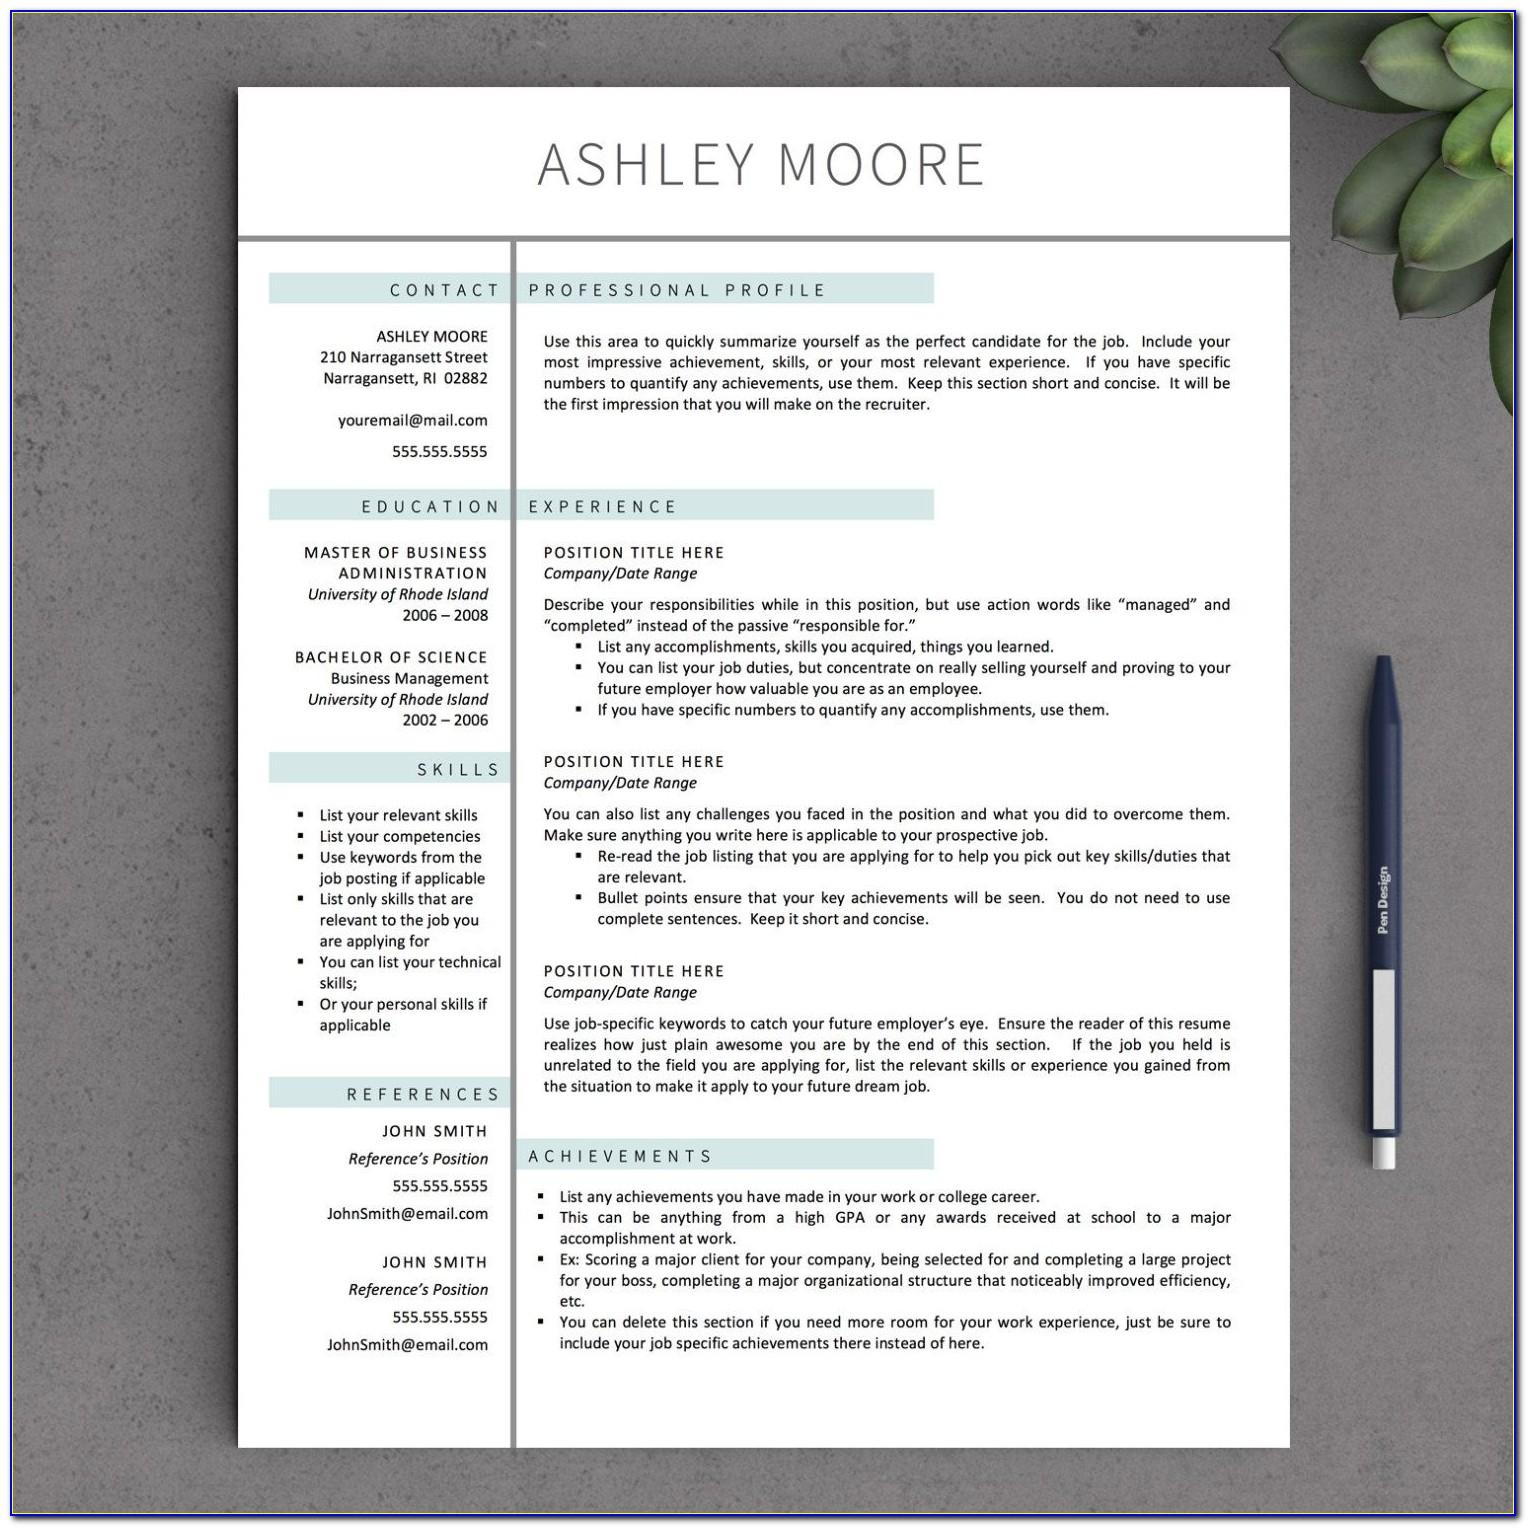 Mac Textedit Resume Template